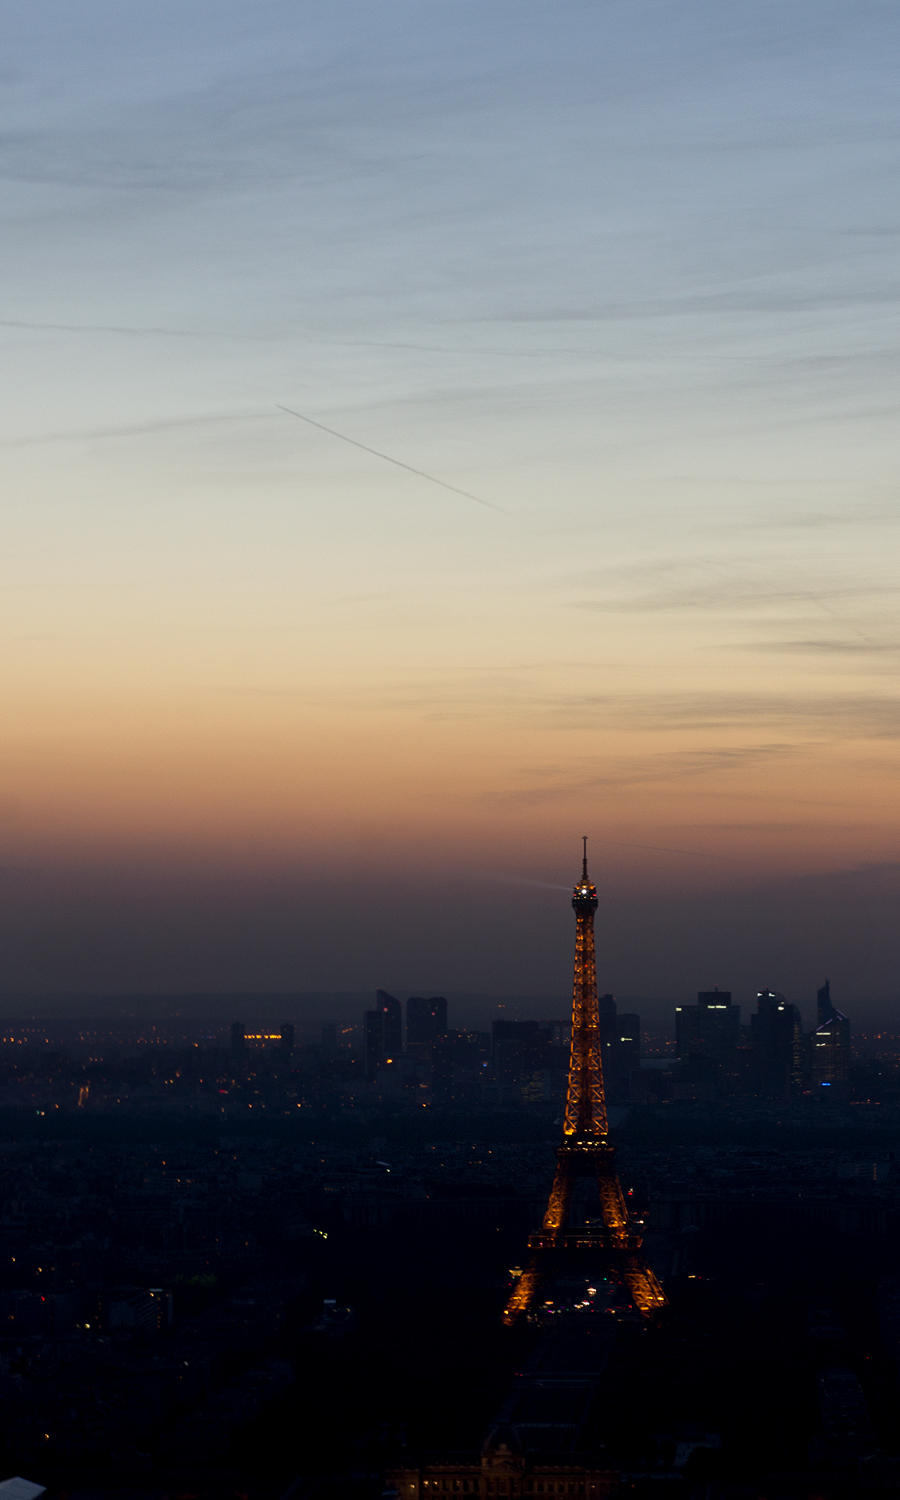 2014-montparnasse-56-tower-paris-france-10-1